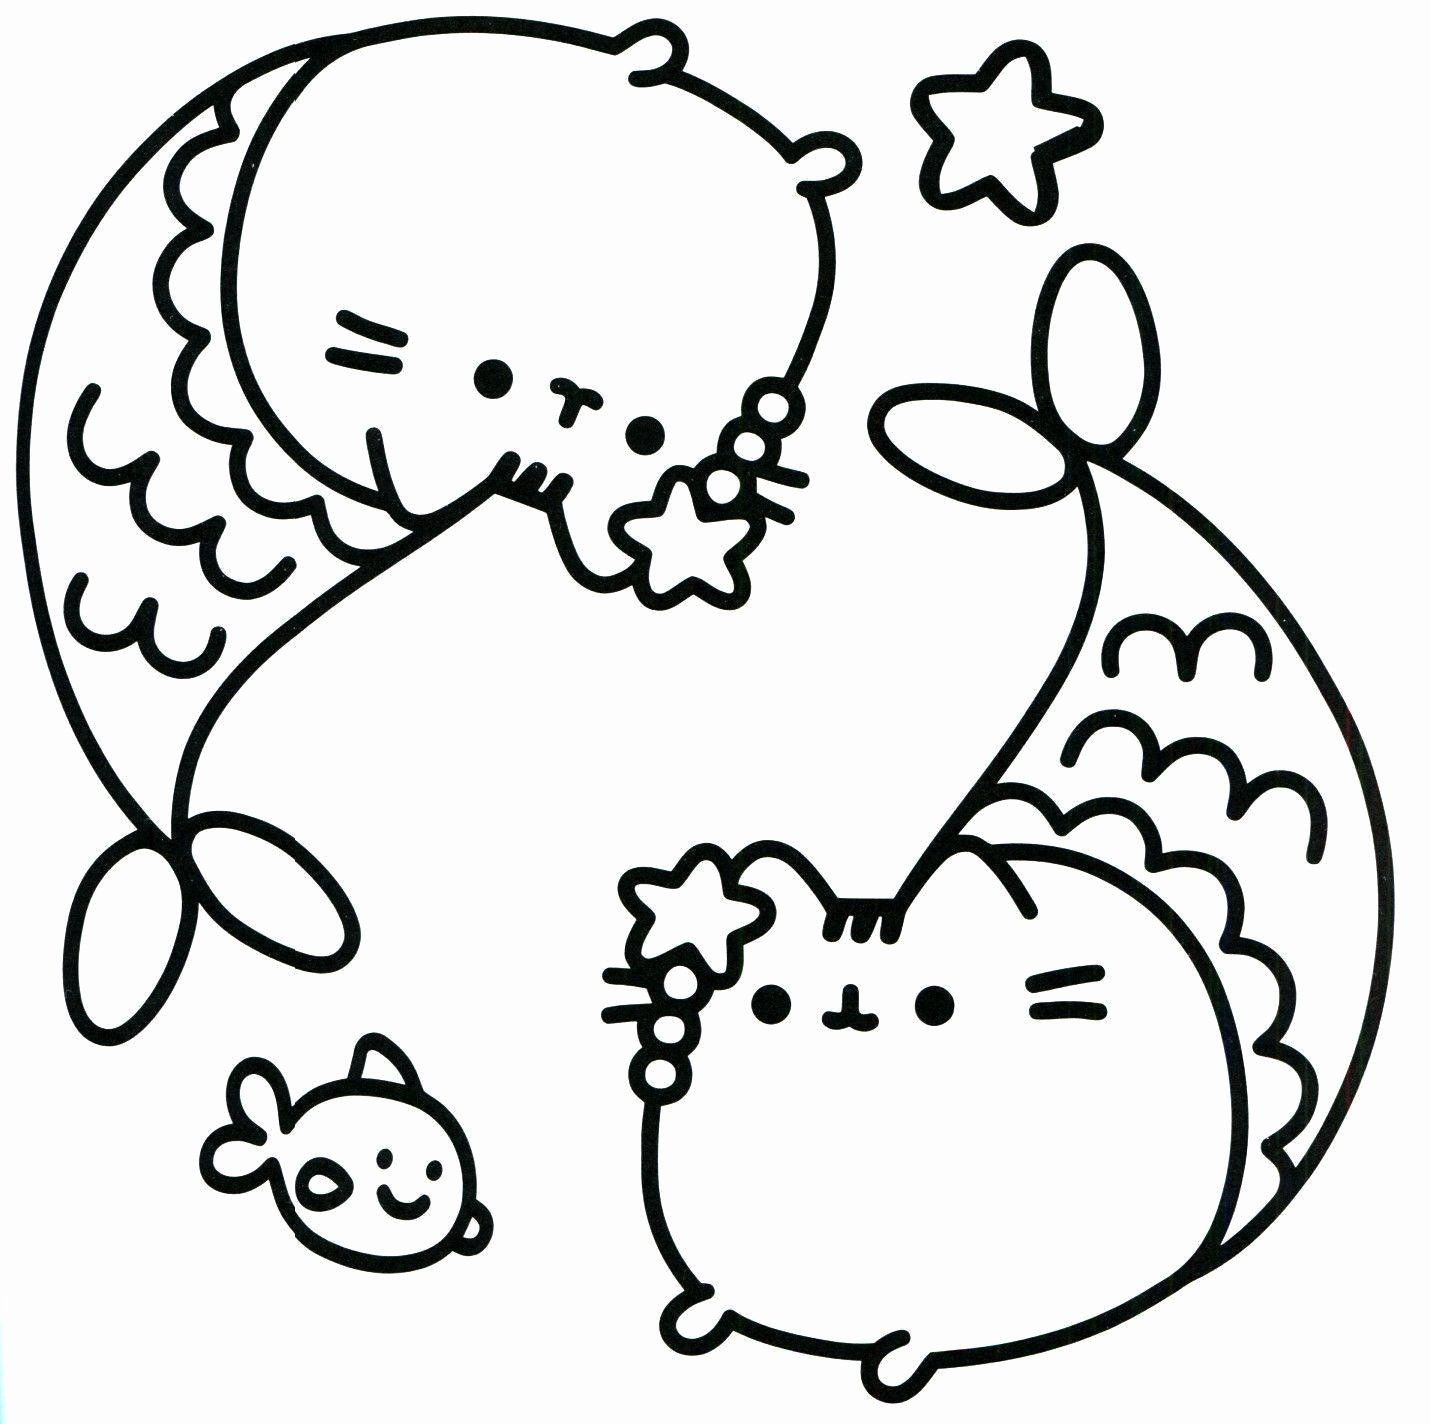 Cute Cat Coloring Pictures Lovely Pusheen Cat Coloring Pages Unicorn Coloring Pages Hello Kitty Colouring Pages Cat Coloring Book